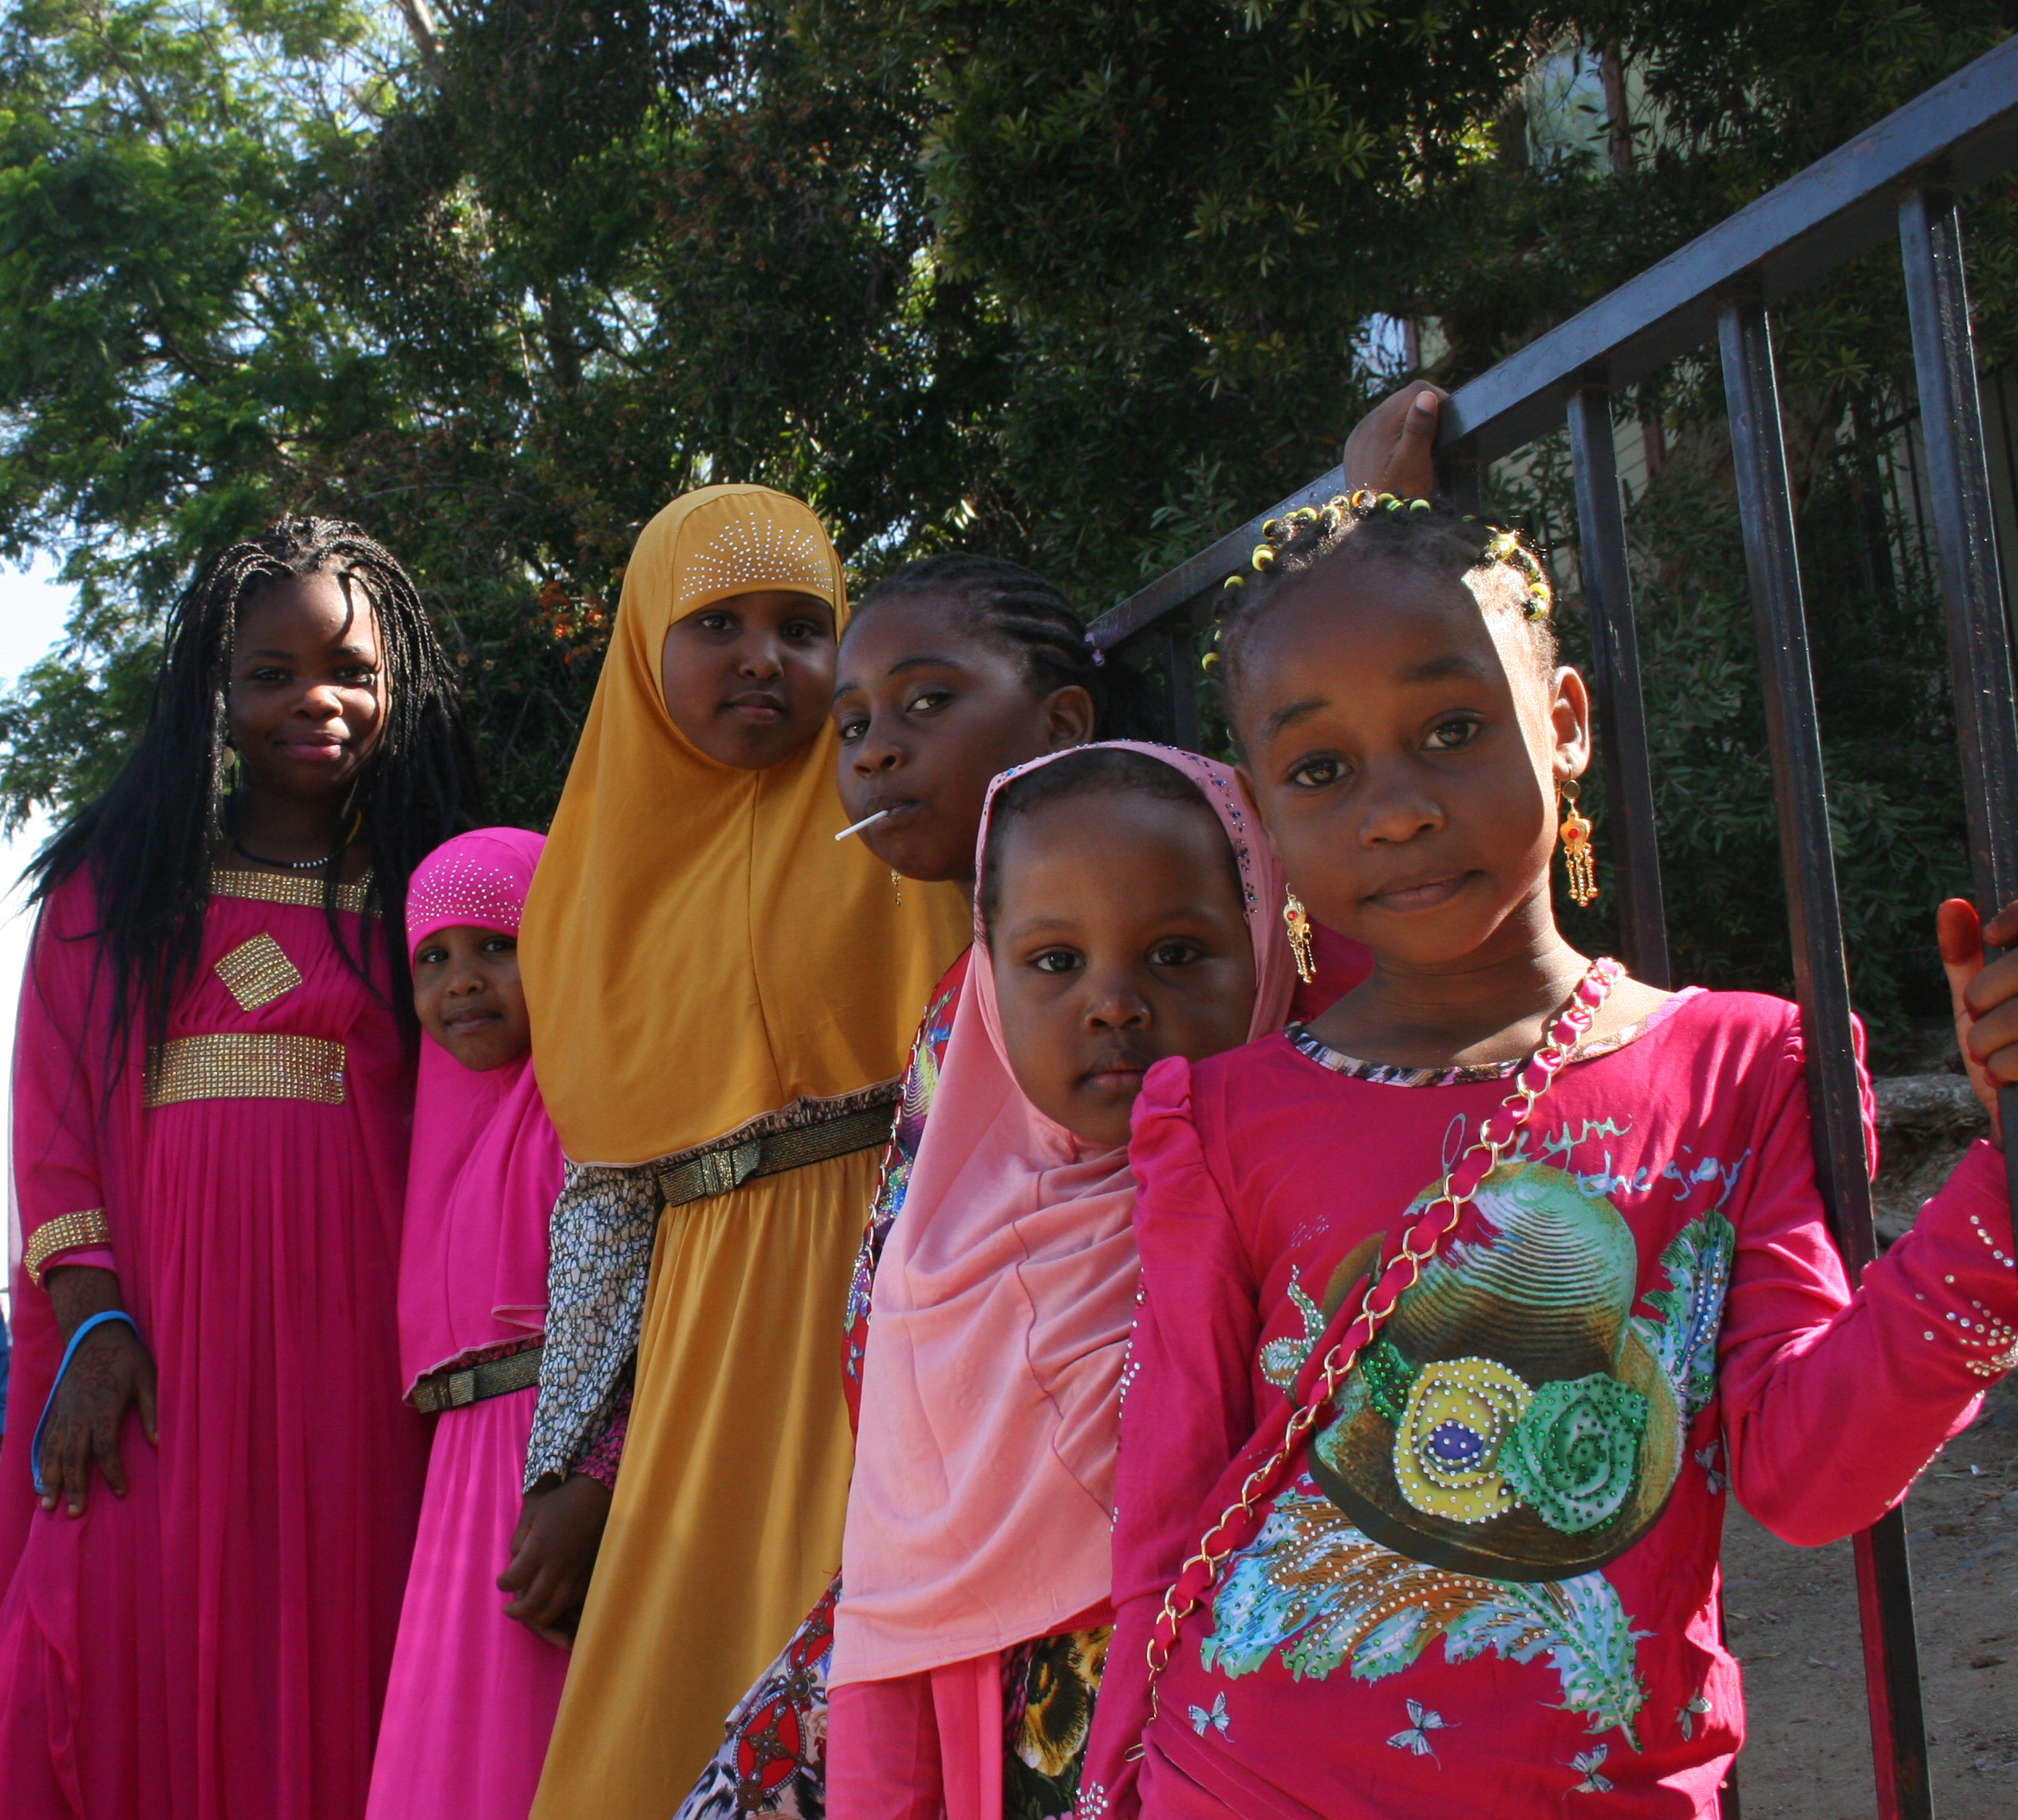 Photos: Eid al-Fitr in City Heights